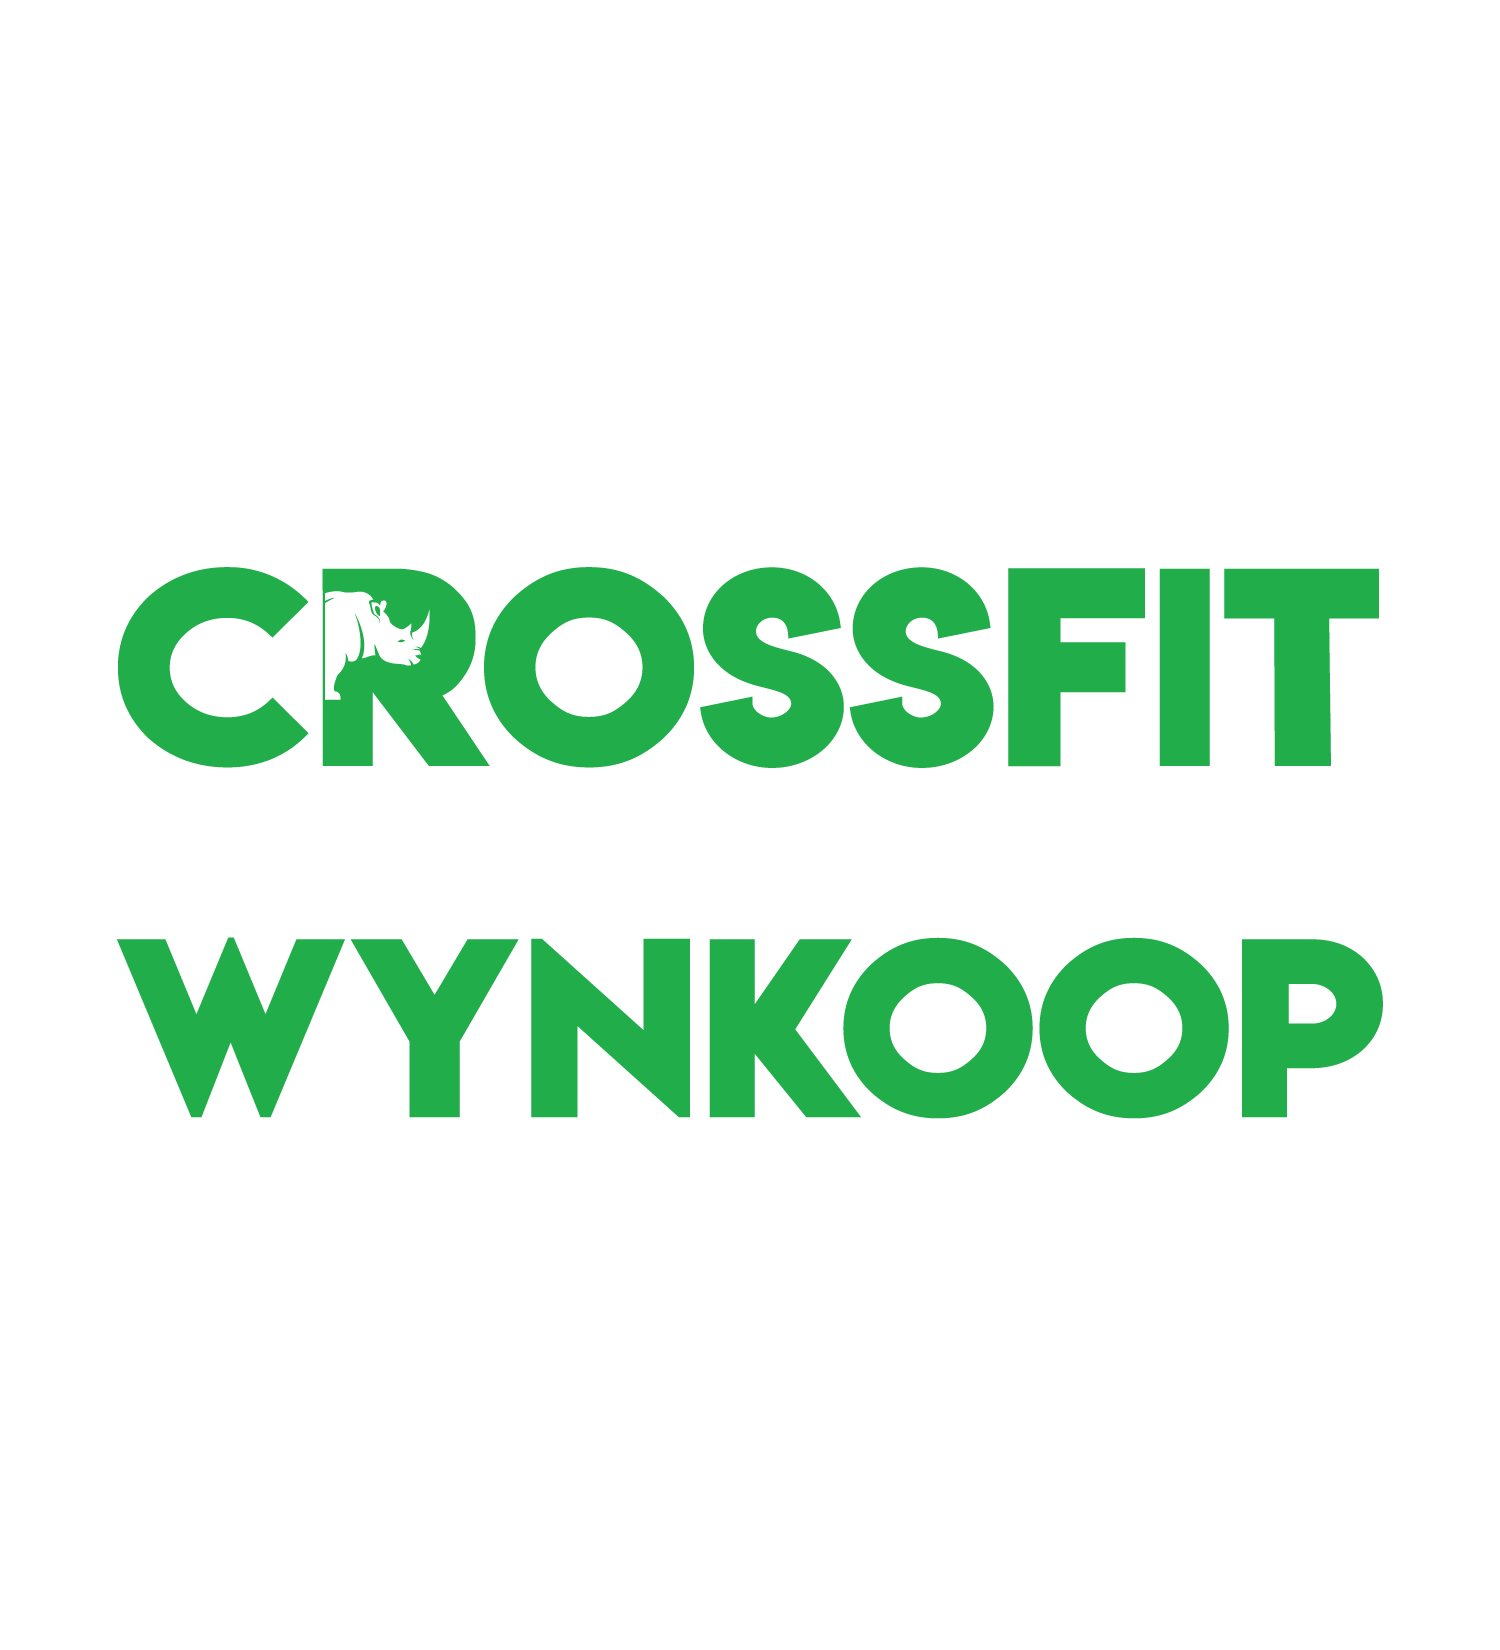 CrossFit Wynkoop